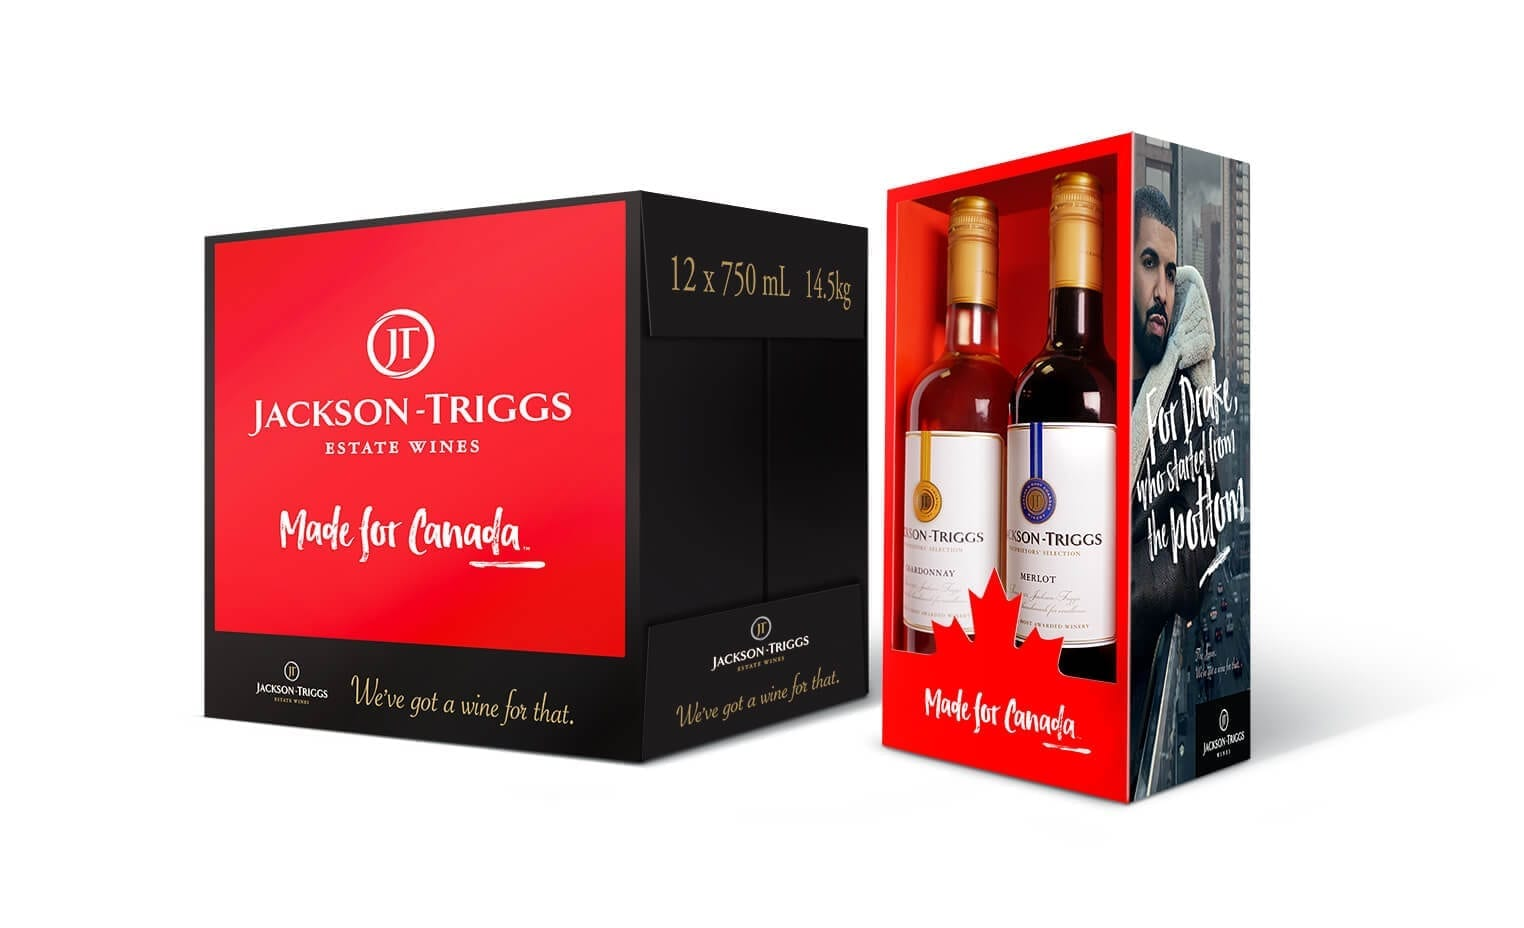 Jackson-Triggs Made For Canada product packaging